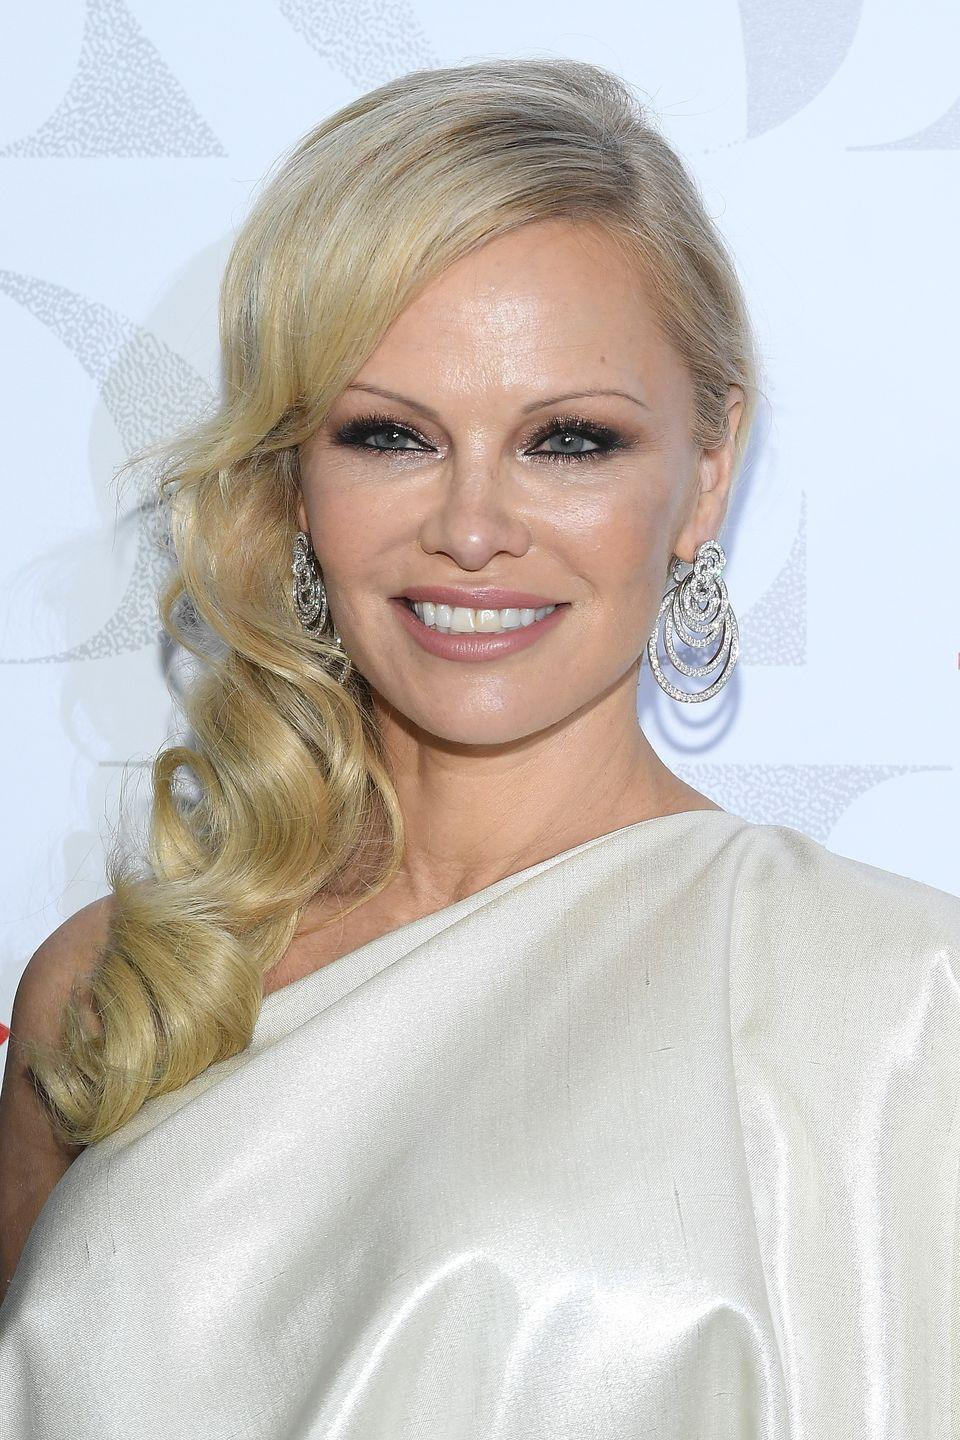 """<p>Pamela Anderson doesn't necessarily regret getting breast implants, but she didn't like how big they were. In 1999, the Baywatch star had them re-augmented to a smaller size. """"I just didn't feel like it looked very good,"""" <a href=""""https://nypost.com/1999/04/17/pam-my-implant-went-bust/"""" rel=""""nofollow noopener"""" target=""""_blank"""" data-ylk=""""slk:she said at the time"""" class=""""link rapid-noclick-resp"""">she said at the time</a>. """"I was really kind of being self-conscious of it.""""</p>"""